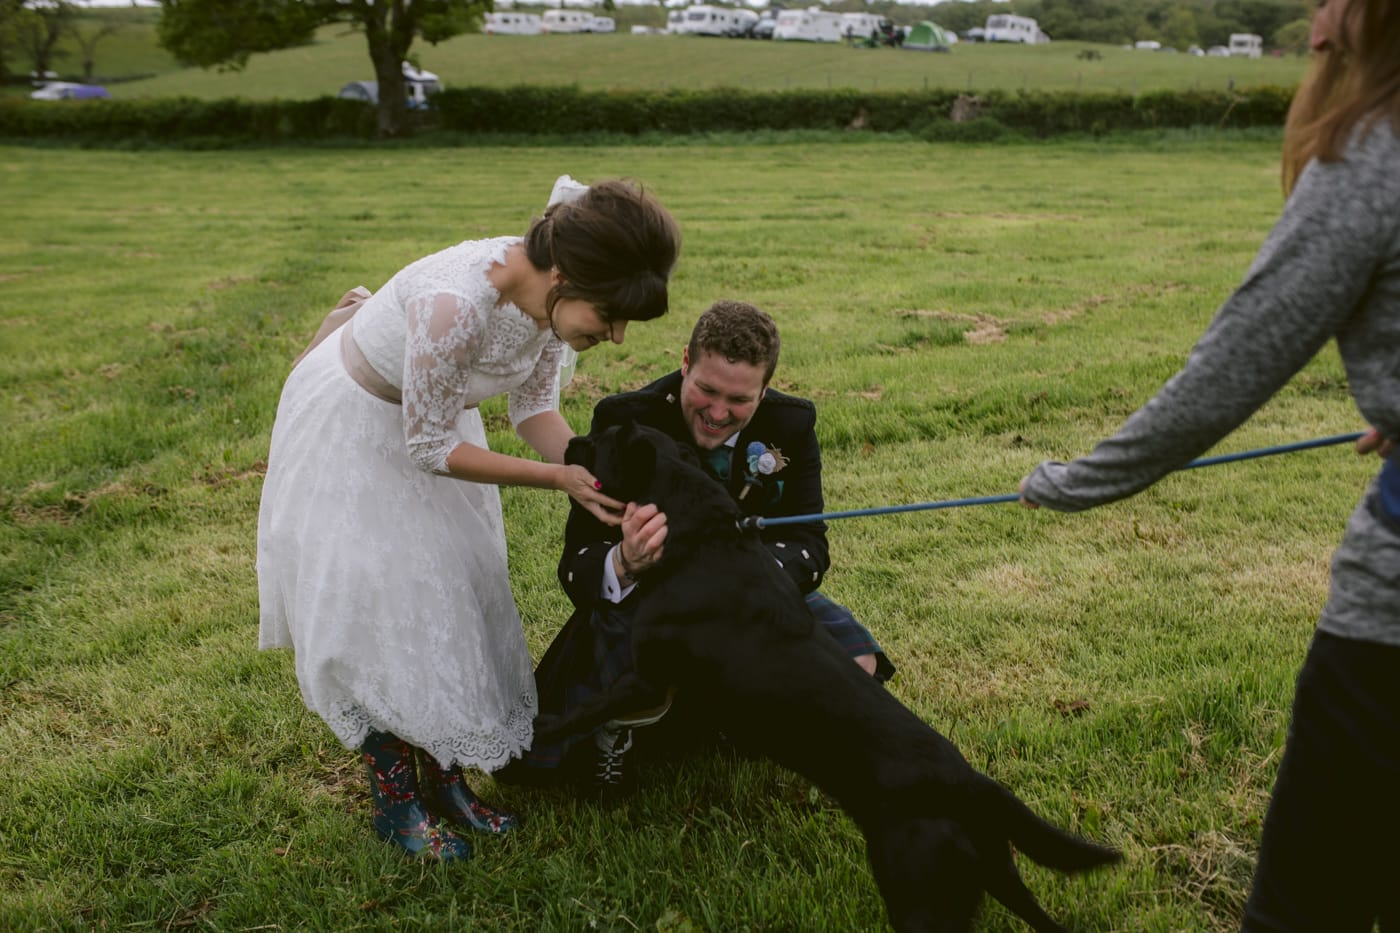 Bride Stroking Dog outside of Wedding Venue, Married, Happy